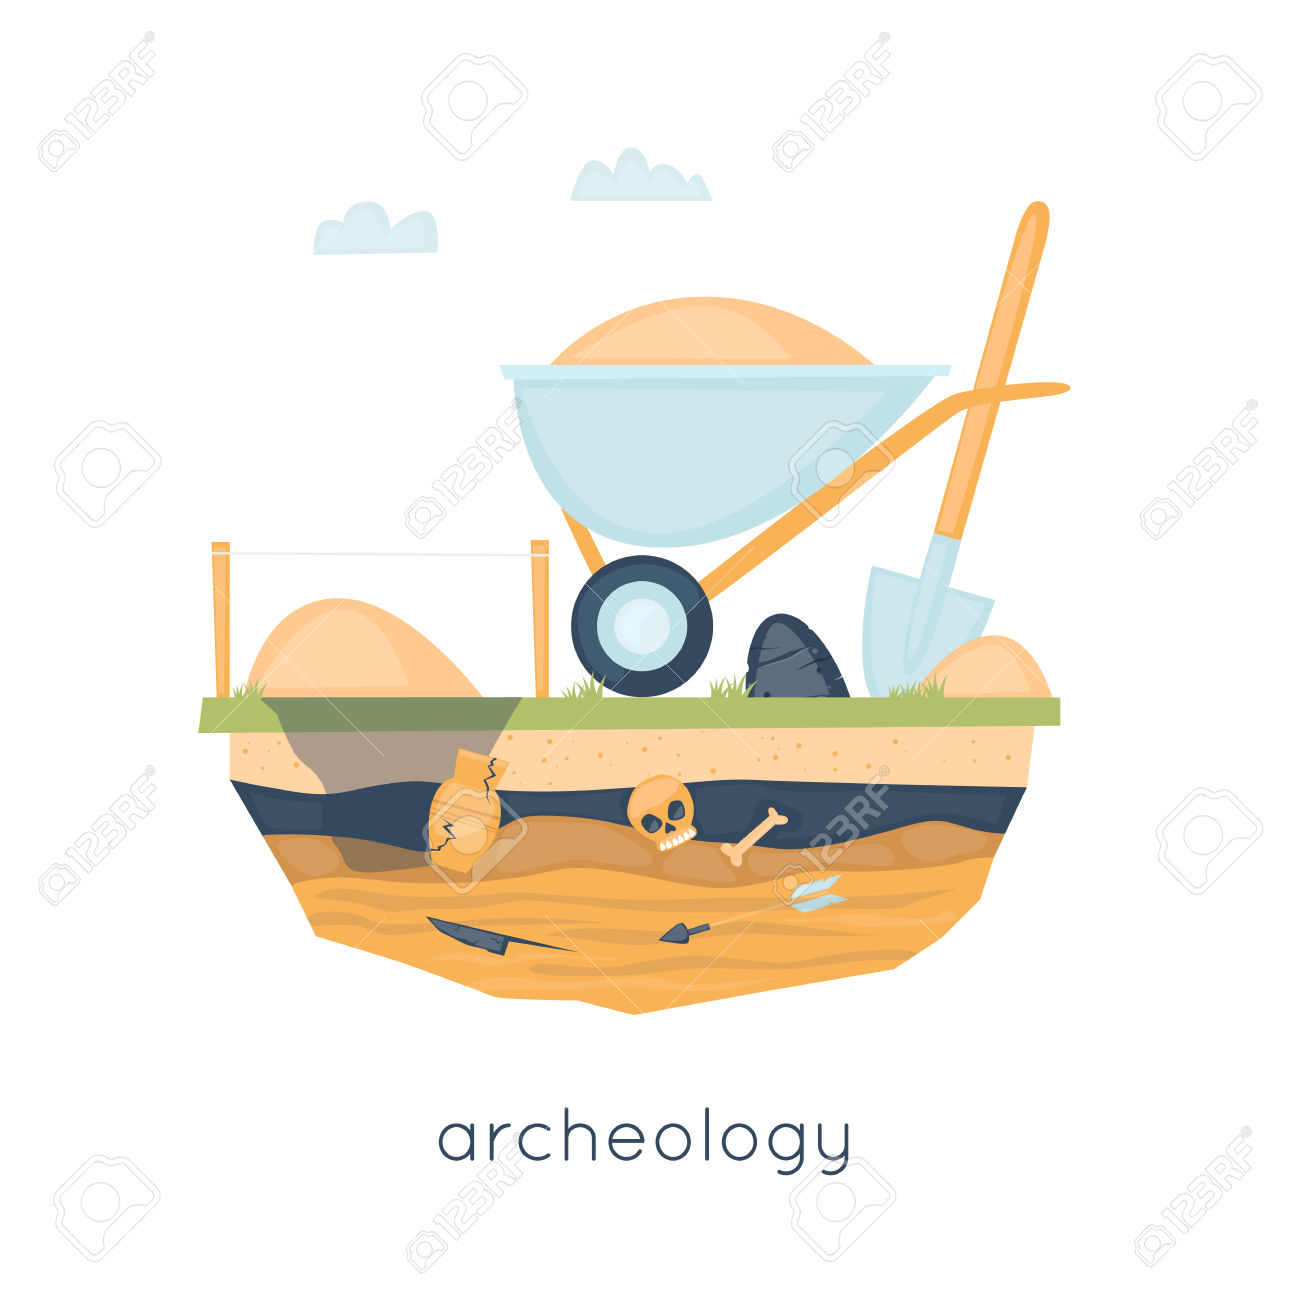 Archeology, Archaeological Excavations, Ancient Artifacts.